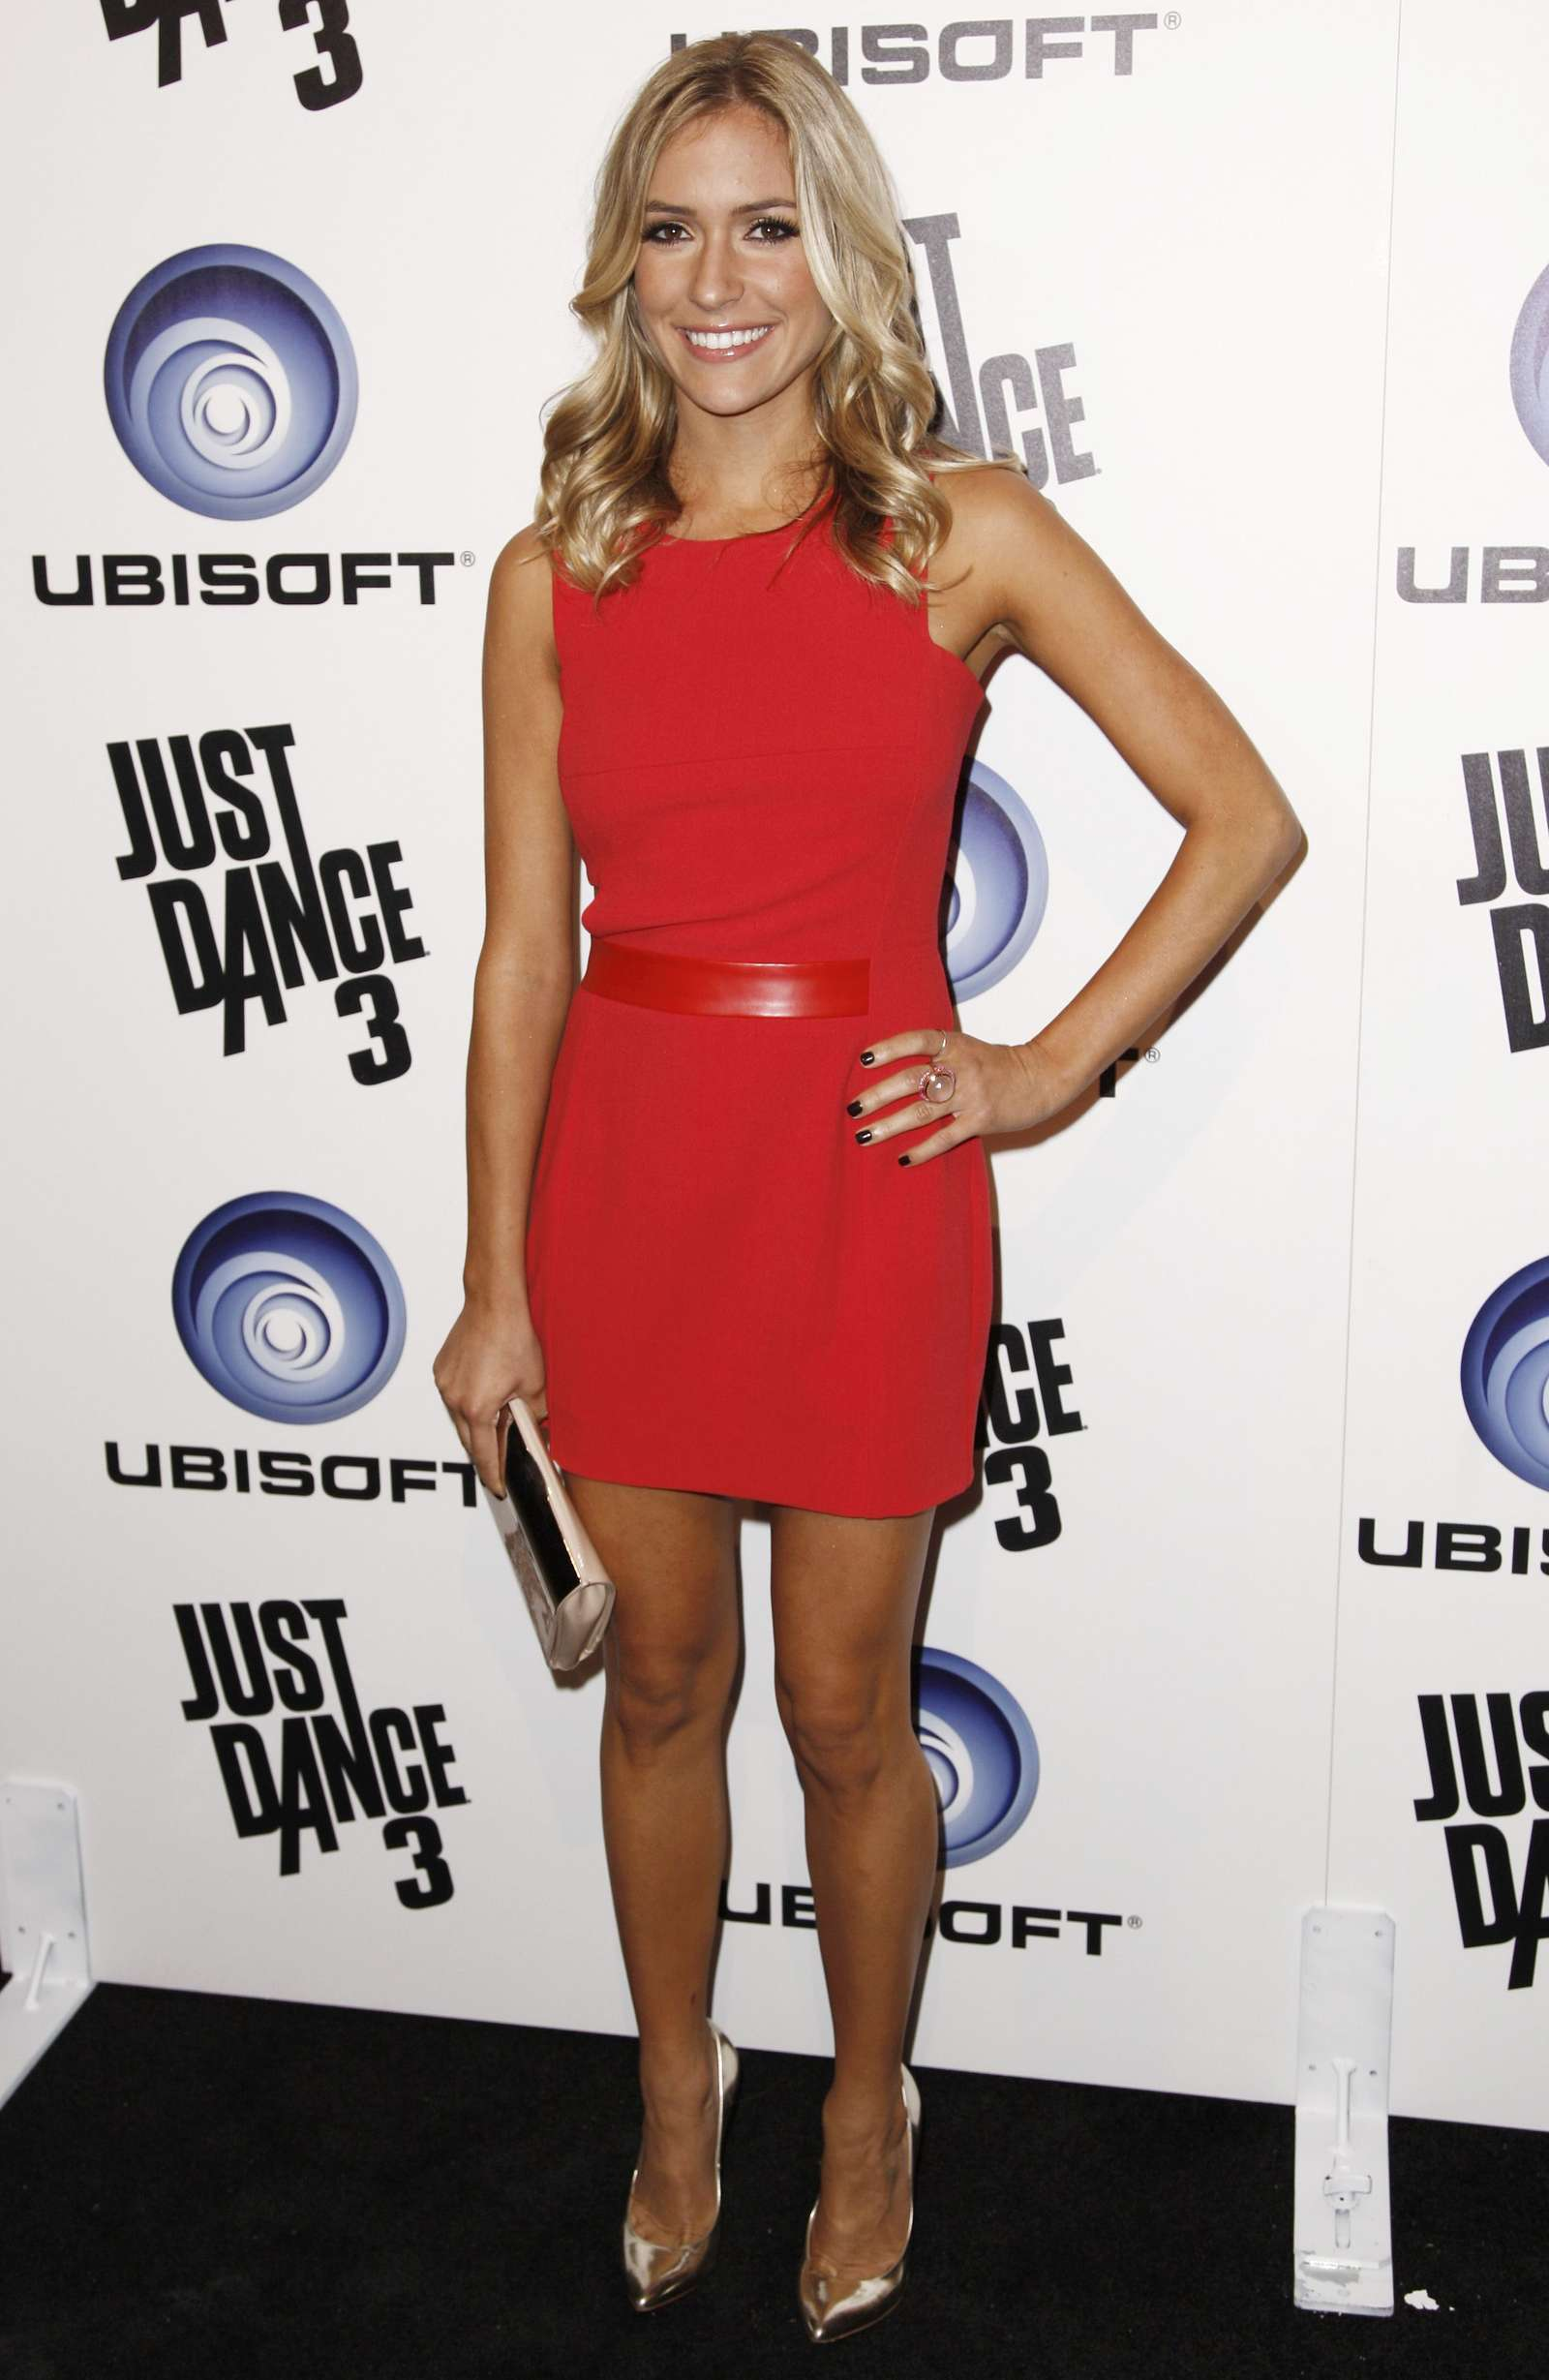 Kristin Cavallari 2011 : Kristin Cavallari Wear Red Dress At Just Dance Launch Party-04